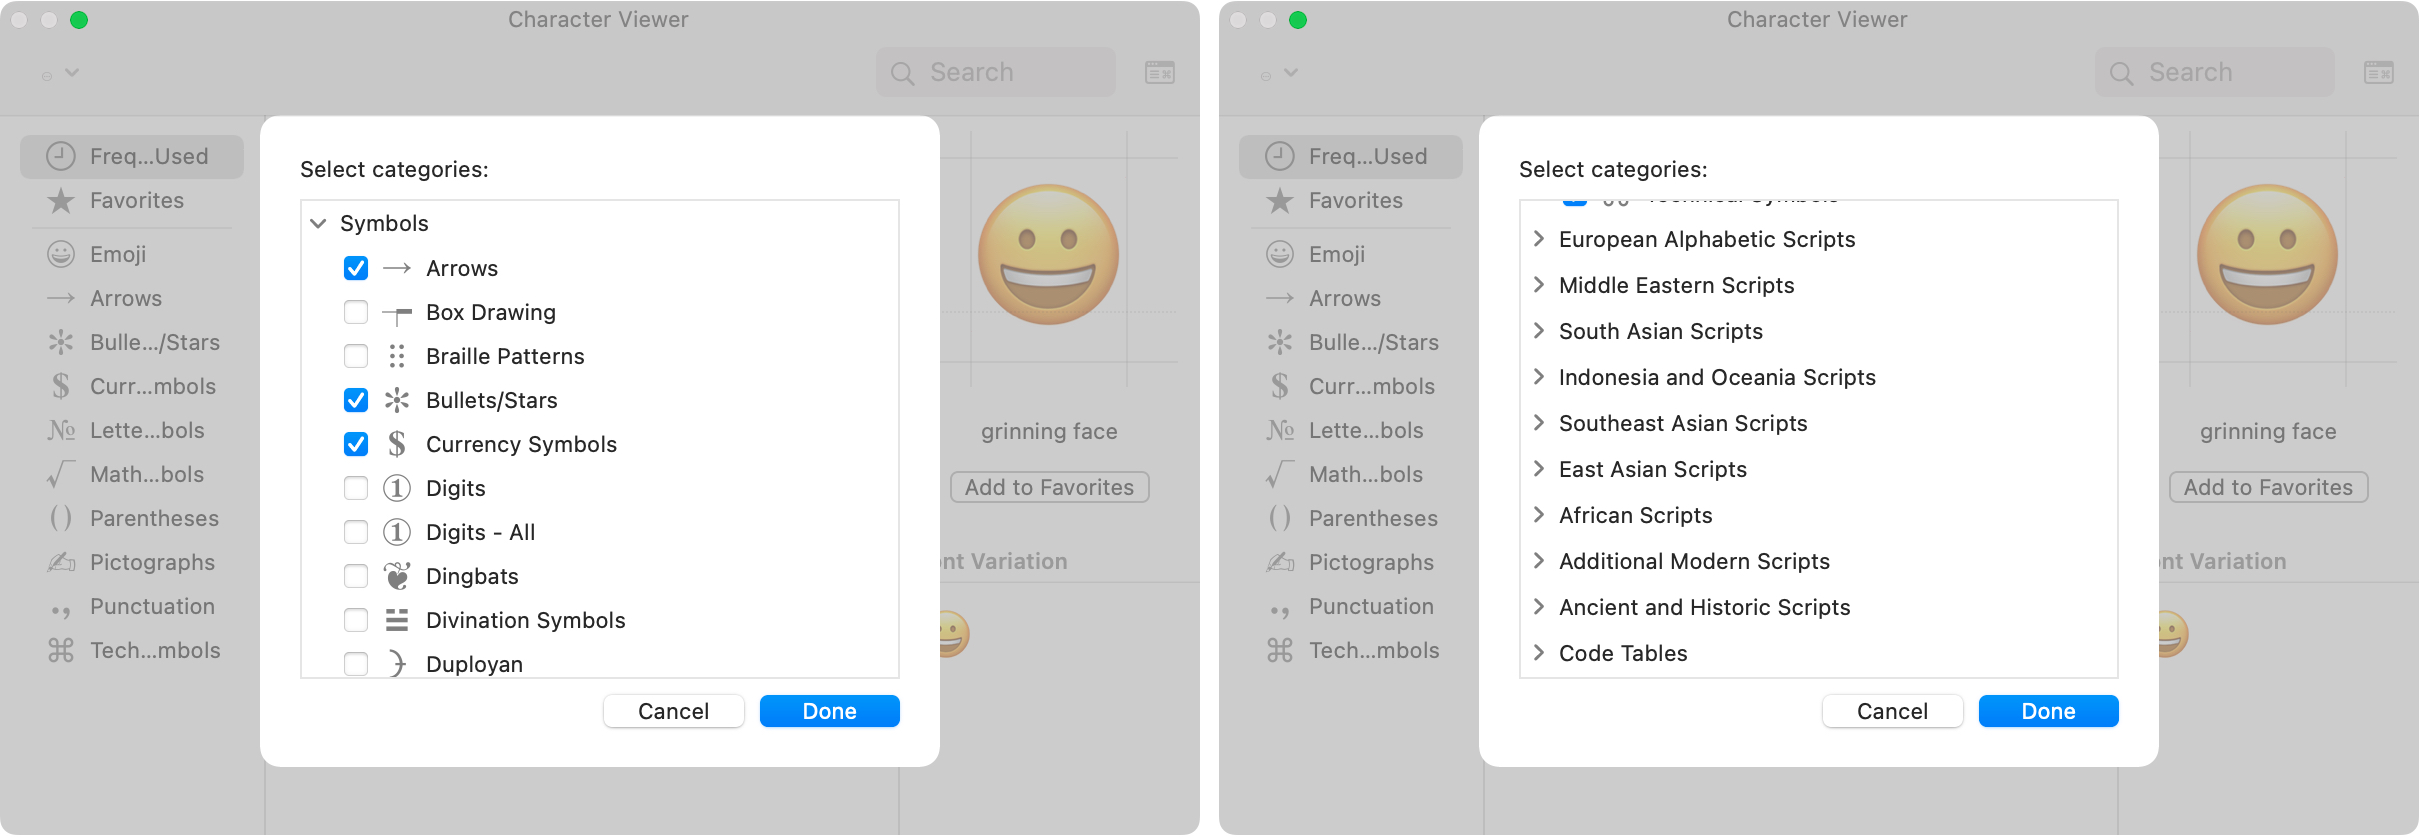 Character Viewer Select Categories on Mac